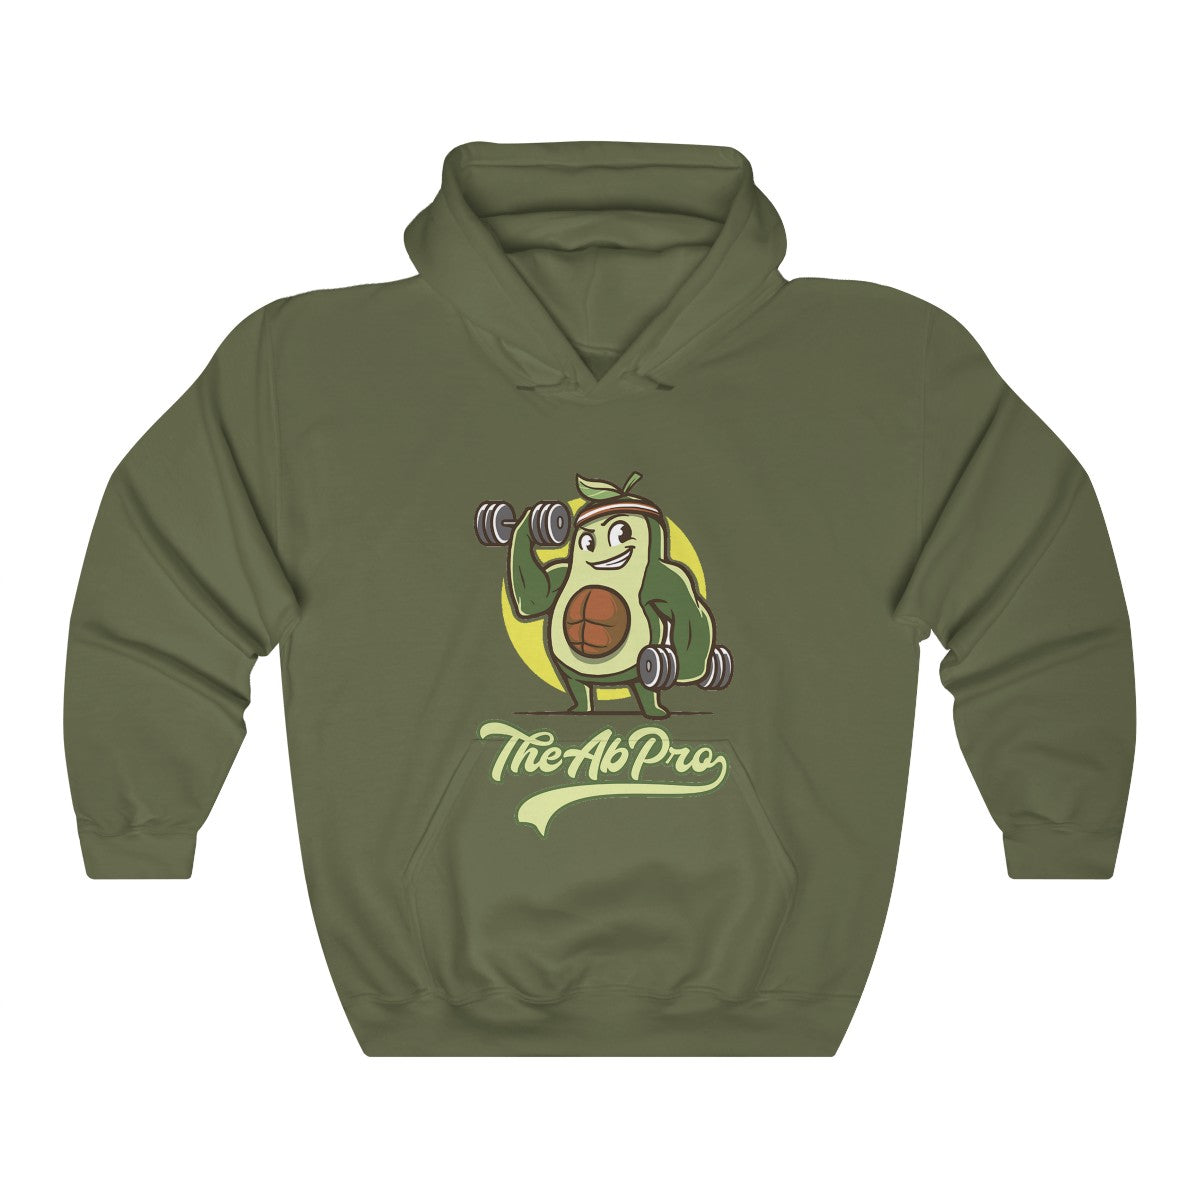 "Avocado Unisex Heavy Blend™ Hooded Sweatshirt - Fit Family Apparel by Erick ""The Ab Pro"""